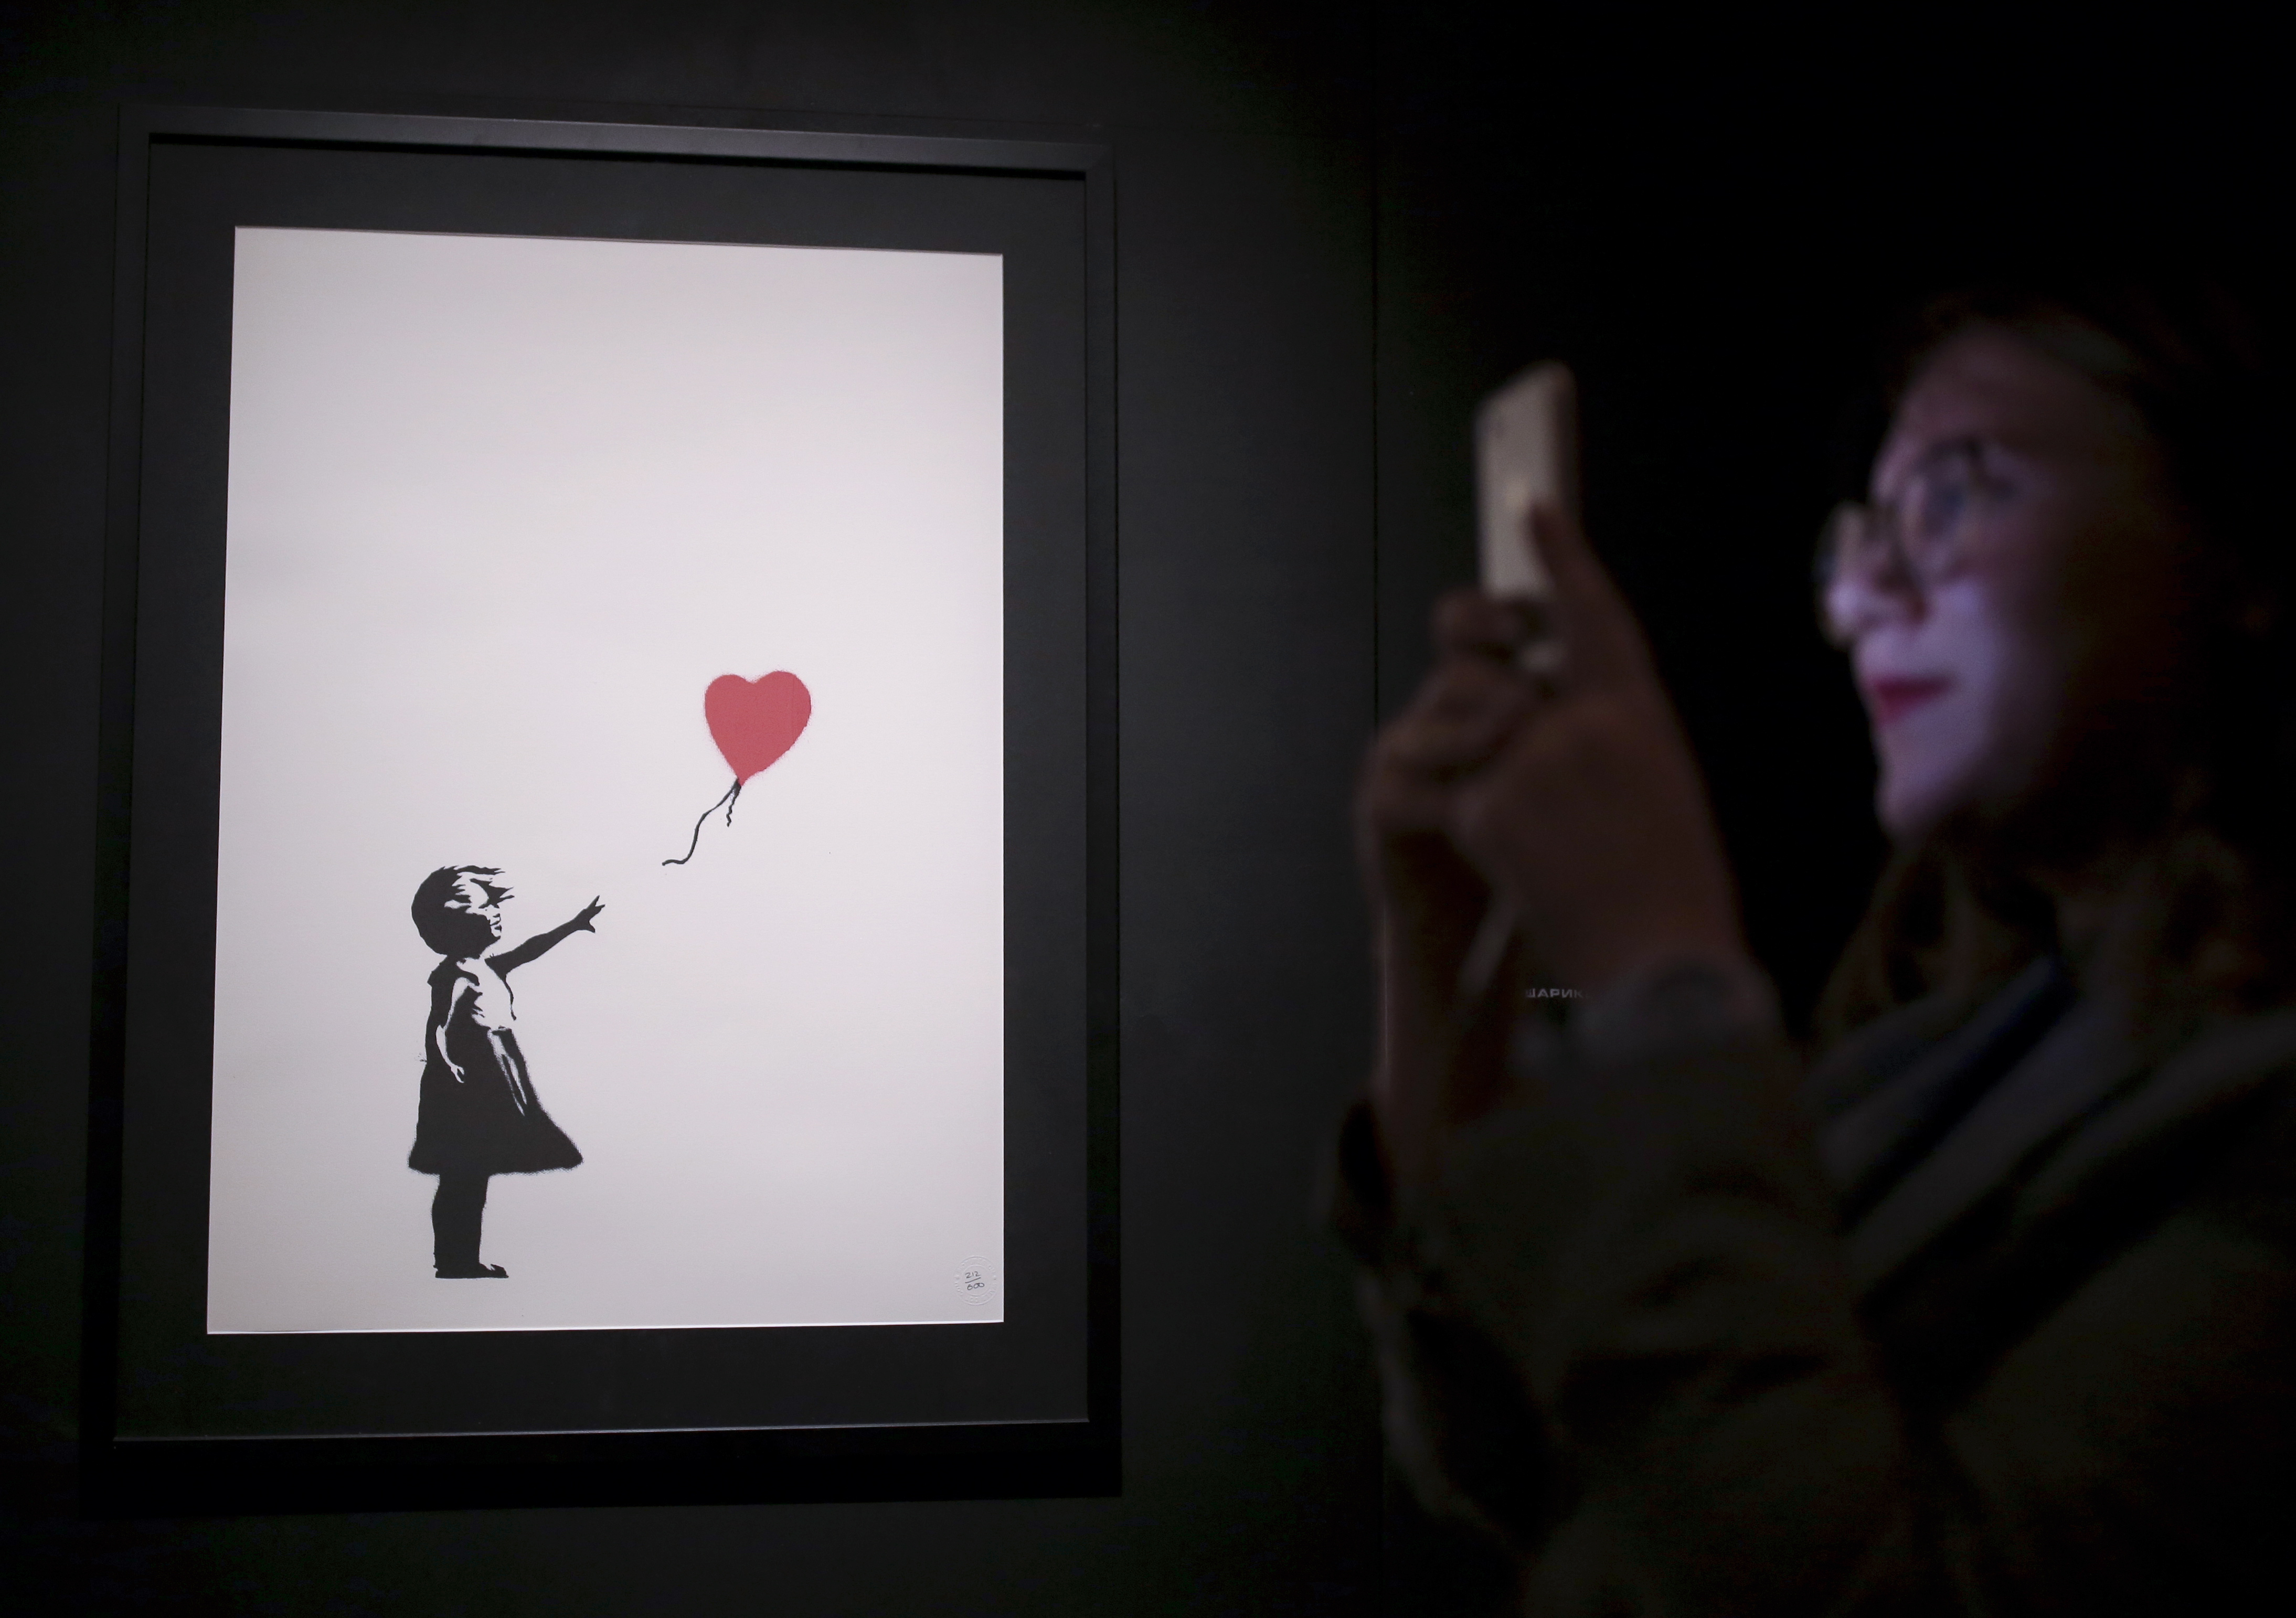 A Balloon Girl mural on display at an exhibition of works by England-based street artist Banksy opening at St Petersburg's Manege Central Exhibition Hall. Anton Vaganov/TASS